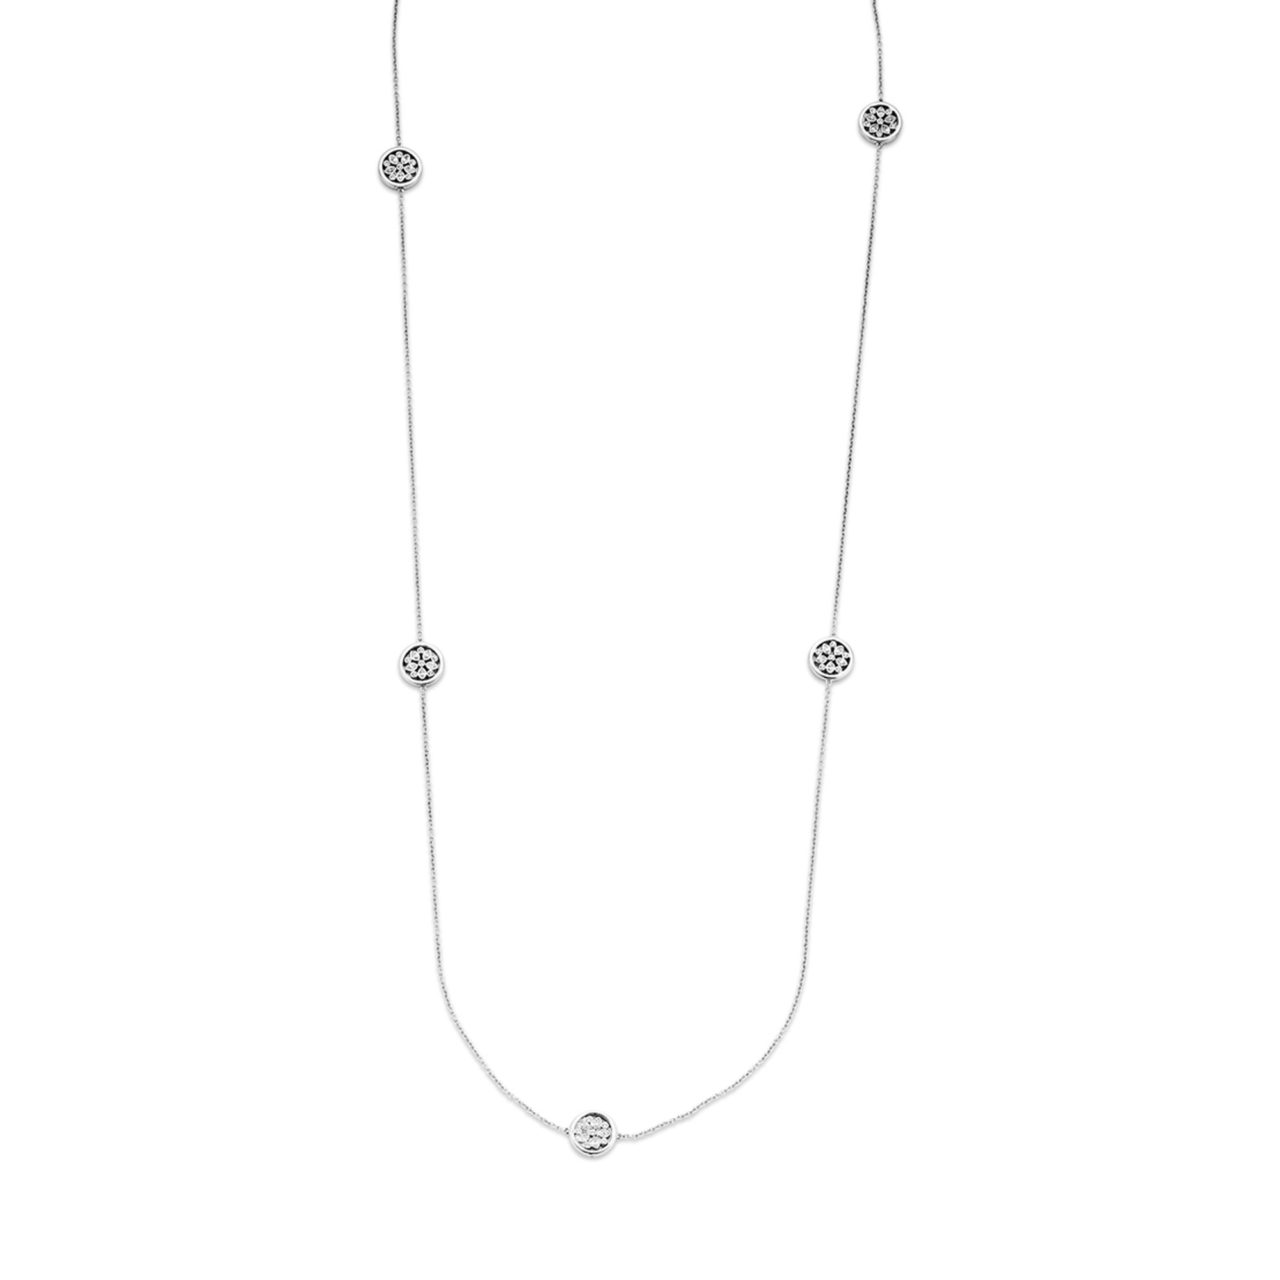 Sterling Silver Necklace by Ti Sento